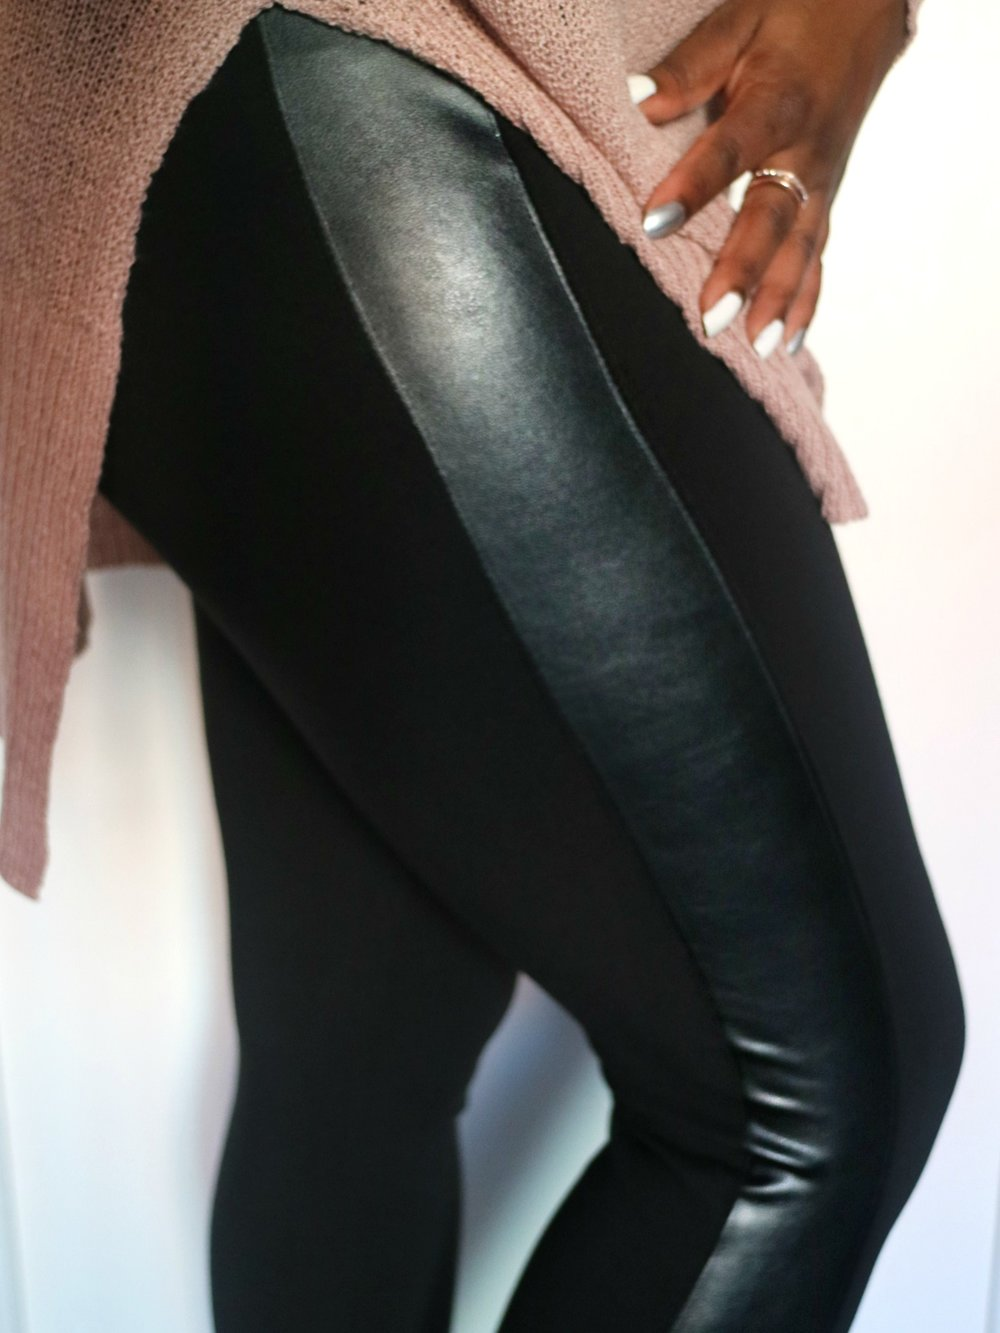 Leggings - Naomi High Rise leggings $39.95 CAD BOGO 50% off